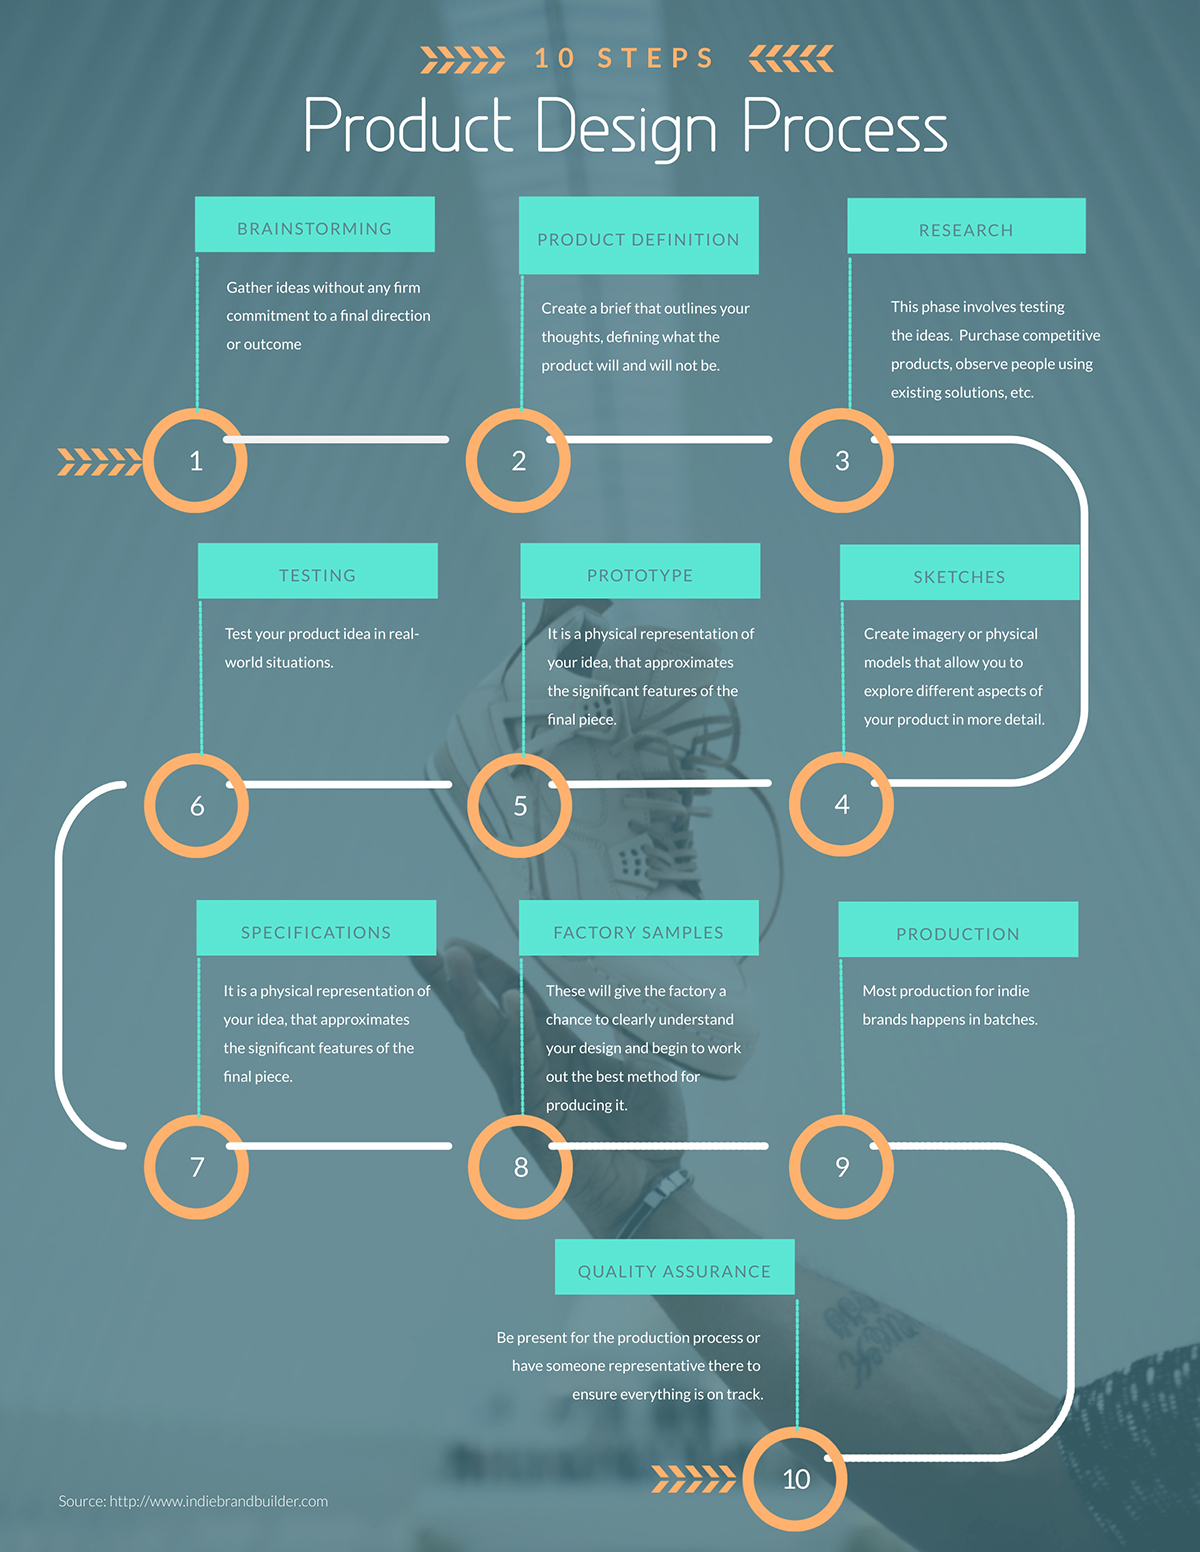 A product design process timeline template available in Visme.